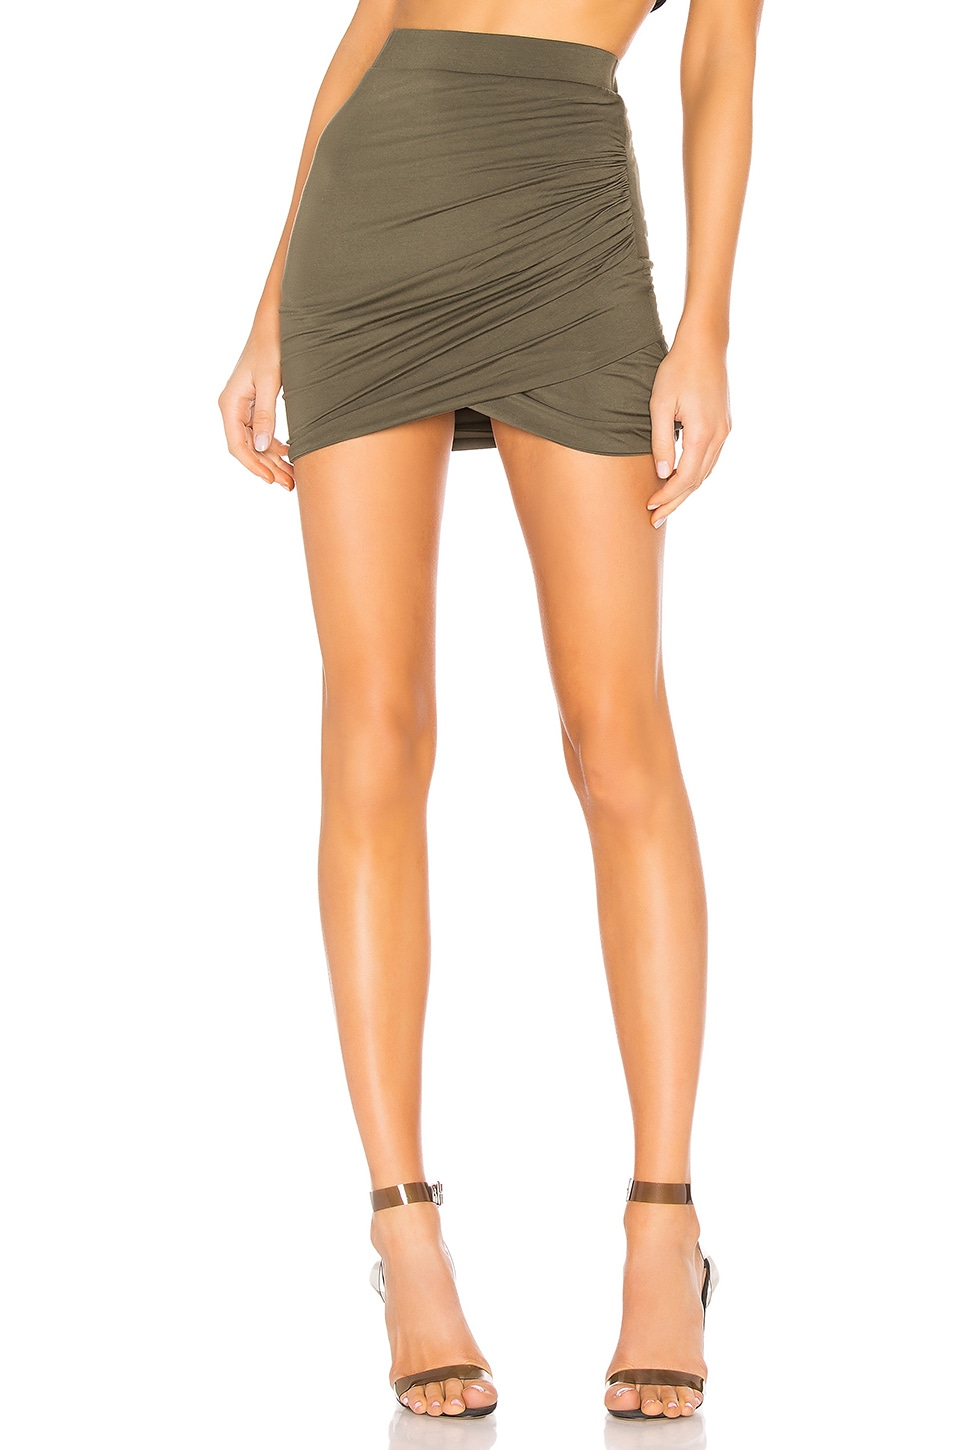 Lovers + Friends Voyage Skirt in Army Green